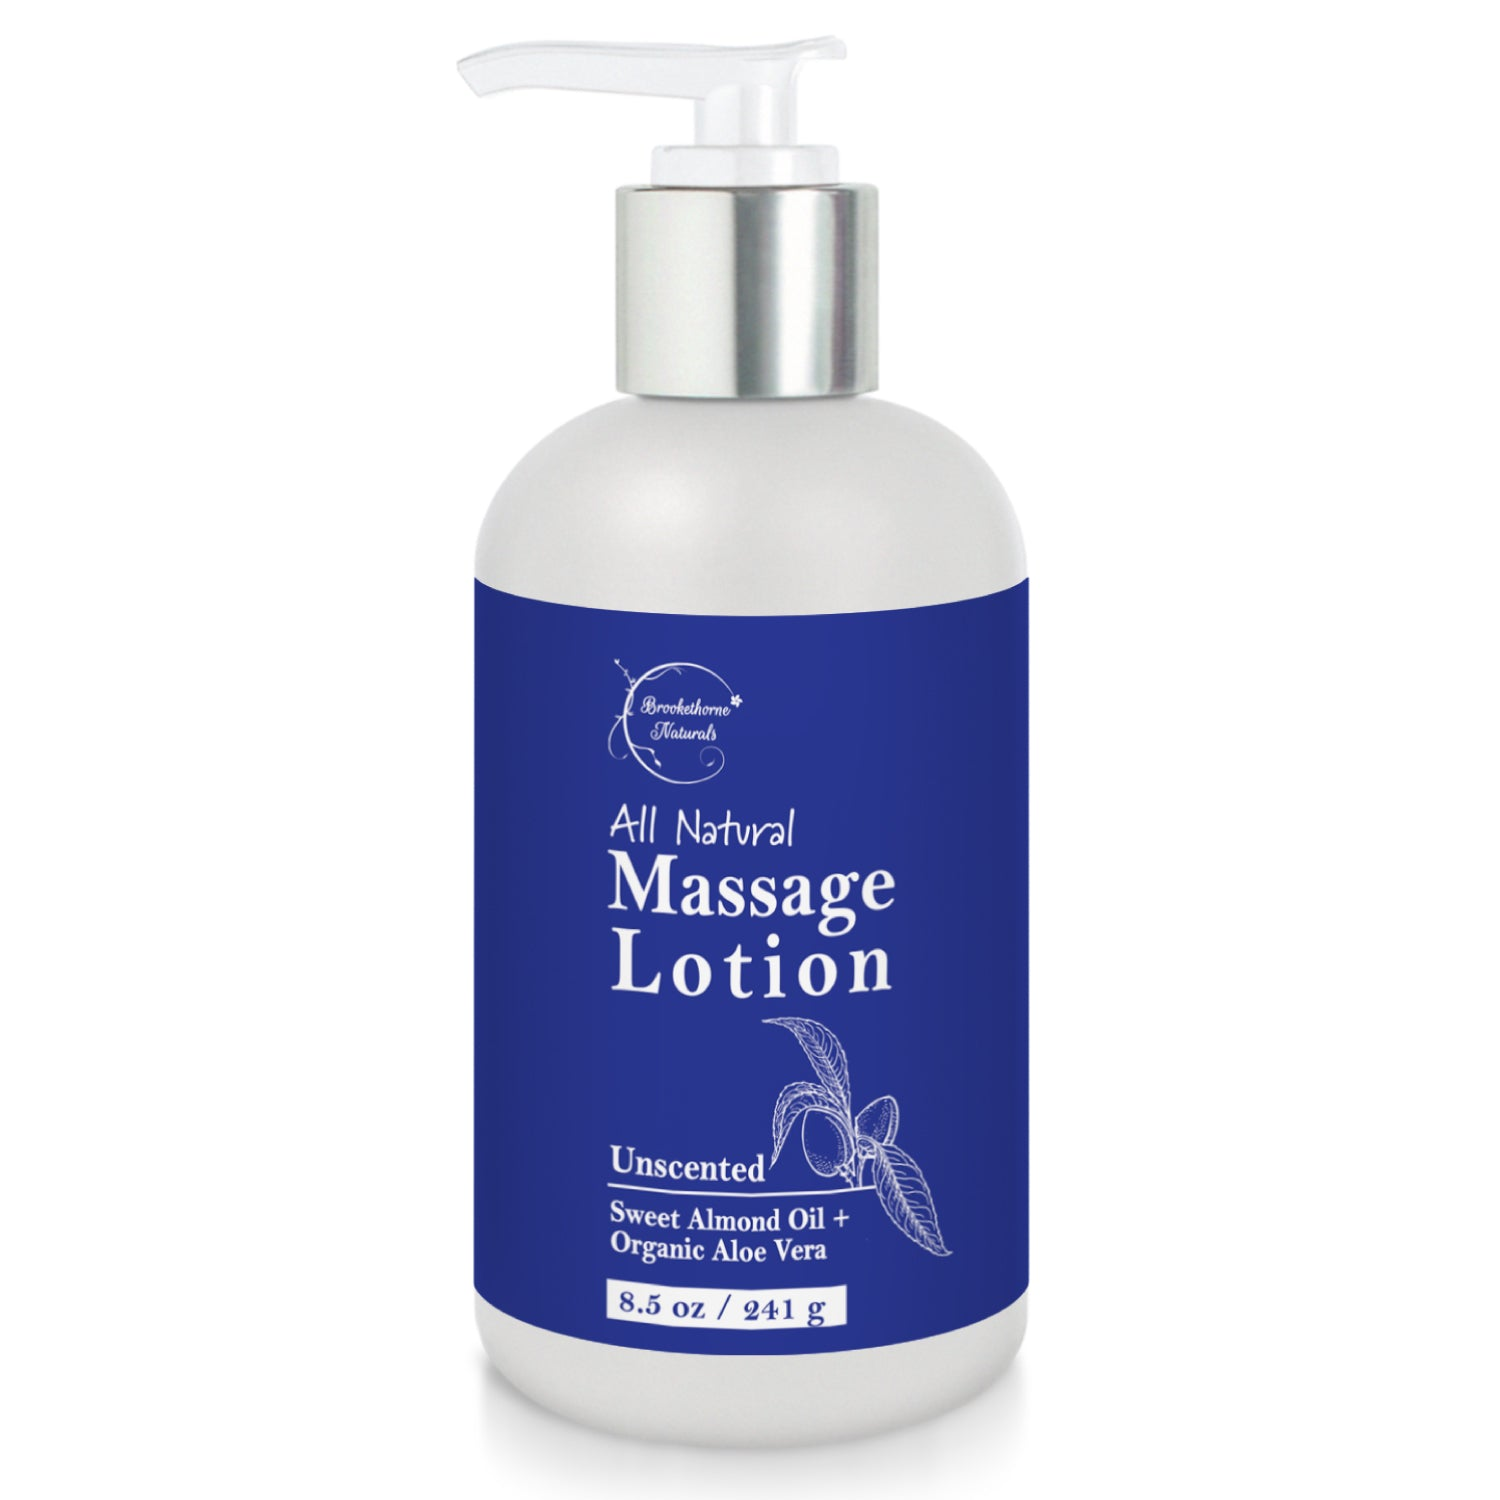 All Natural Massage Lotion (Unscented) - 8.5oz